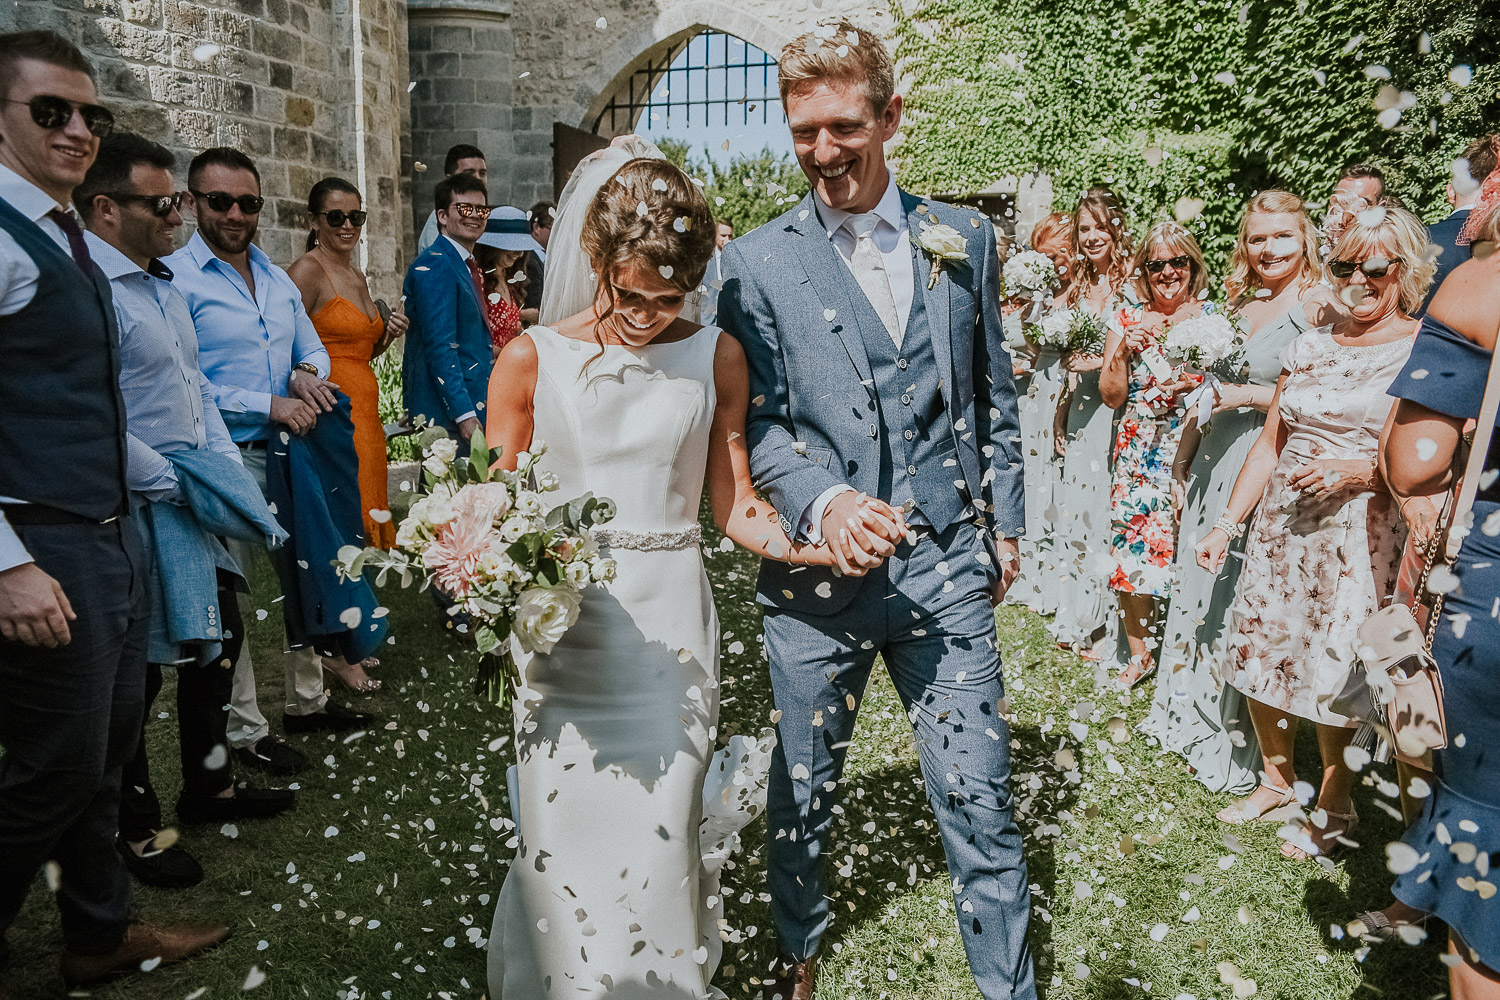 chateau_de_lisse_gers_gascony_south_west_france_family_wedding_katy_webb_photography_UK44